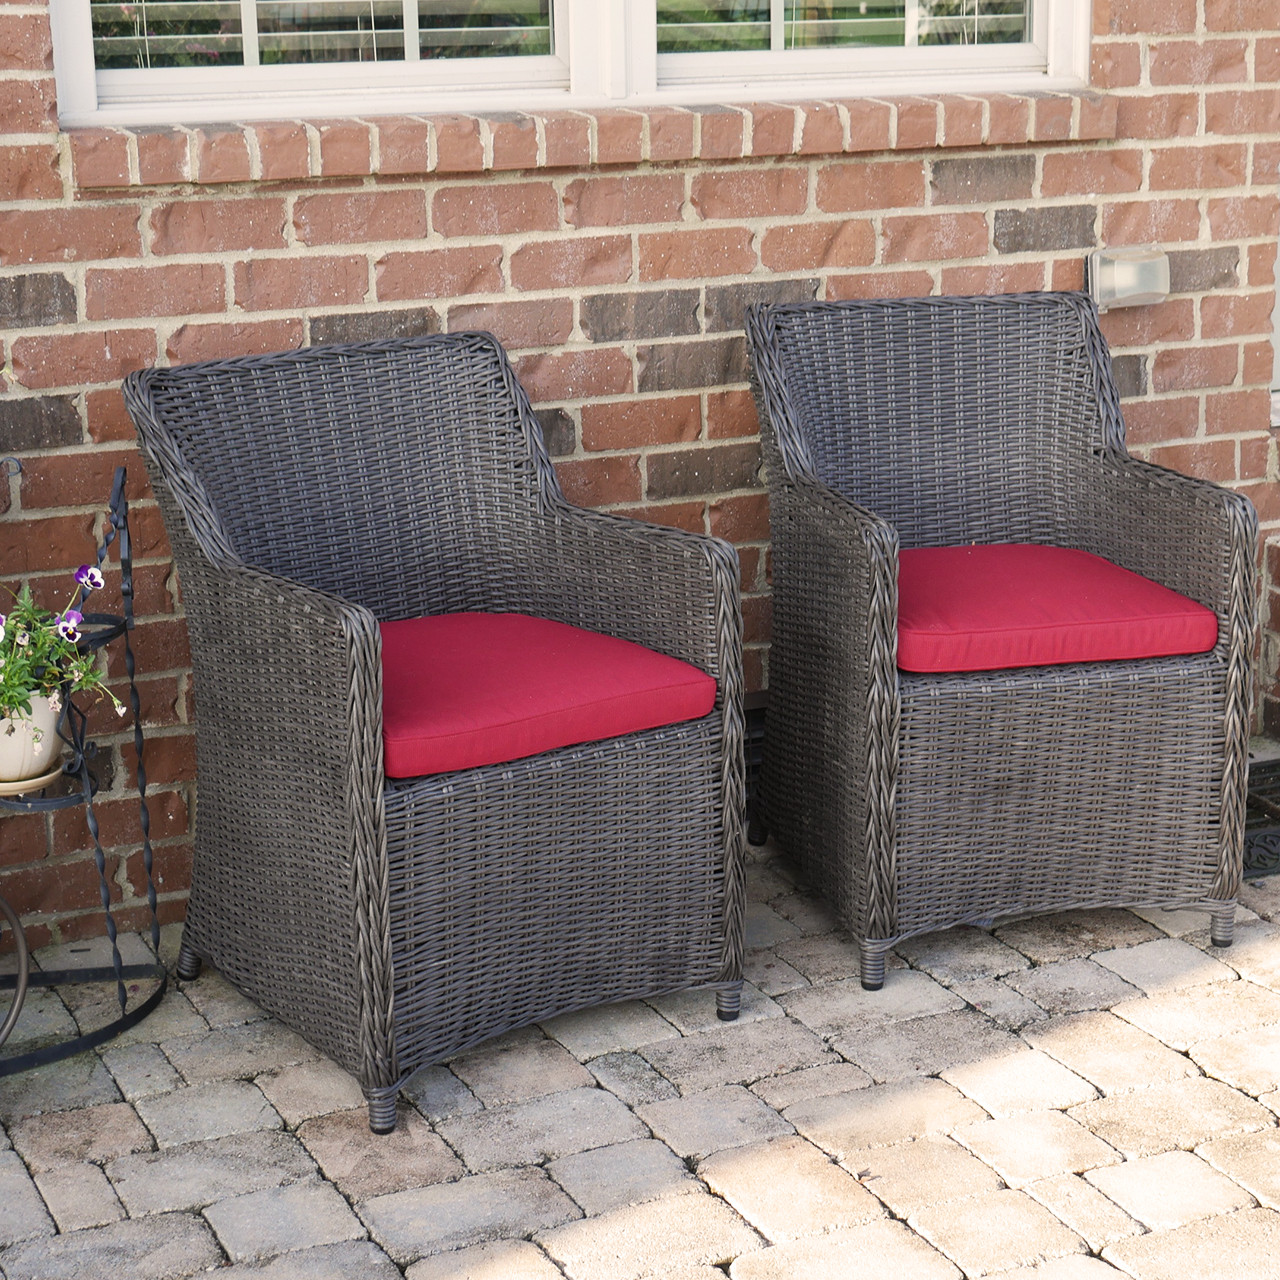 sea island wicker patio lounge chair set with red cushion set of 2